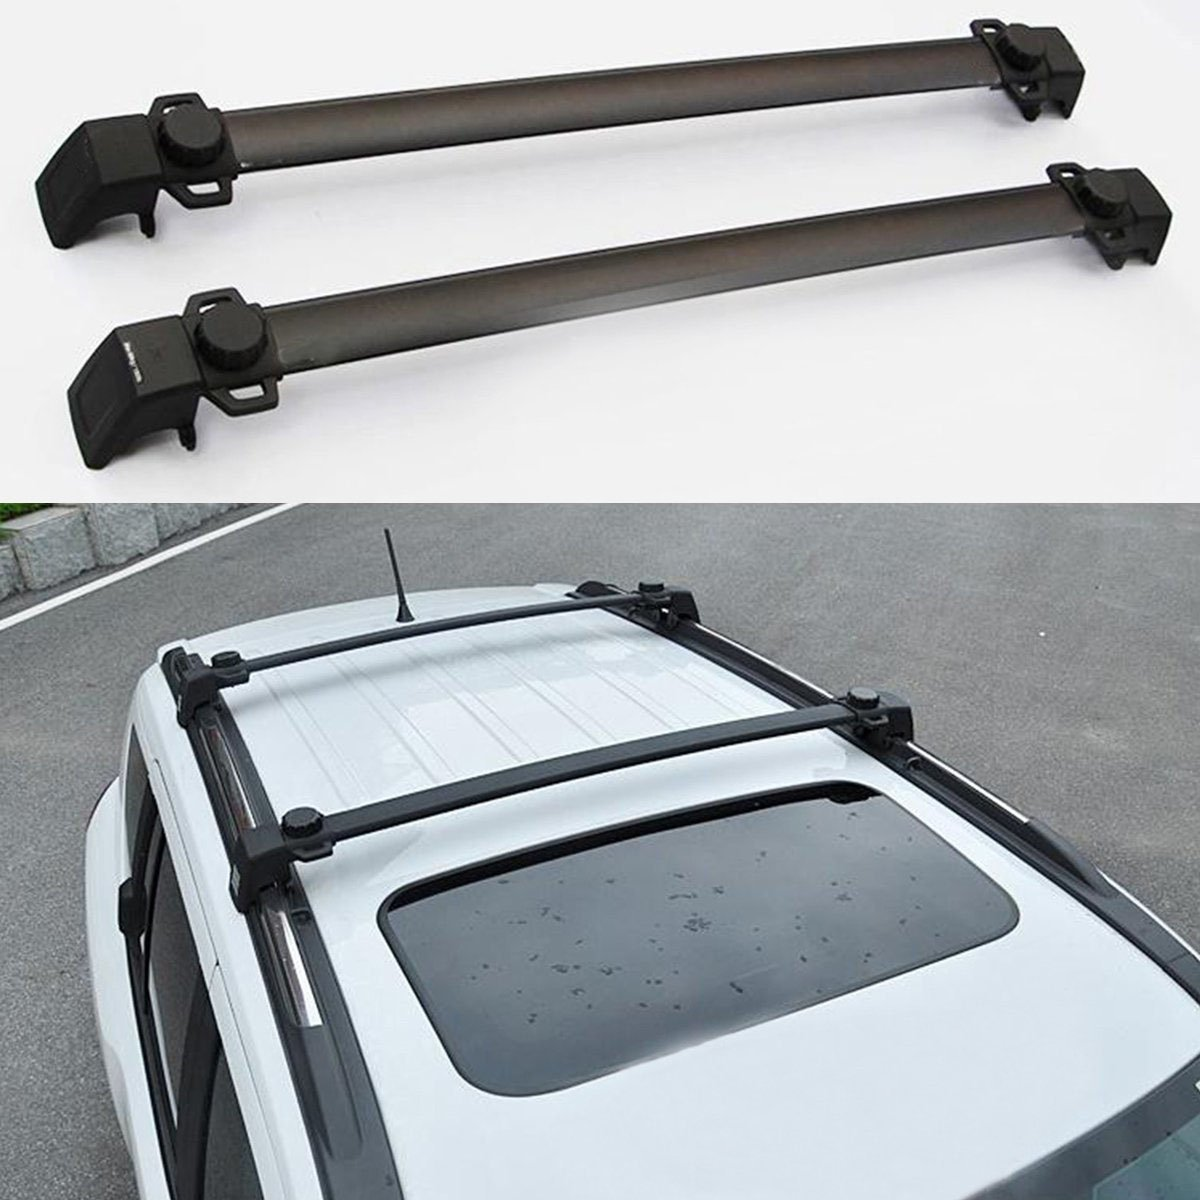 JDopption 2pcs Roof Rails Cross Bar Luggage Rack Crossbar FOR 2011-2015 JEEP Compass